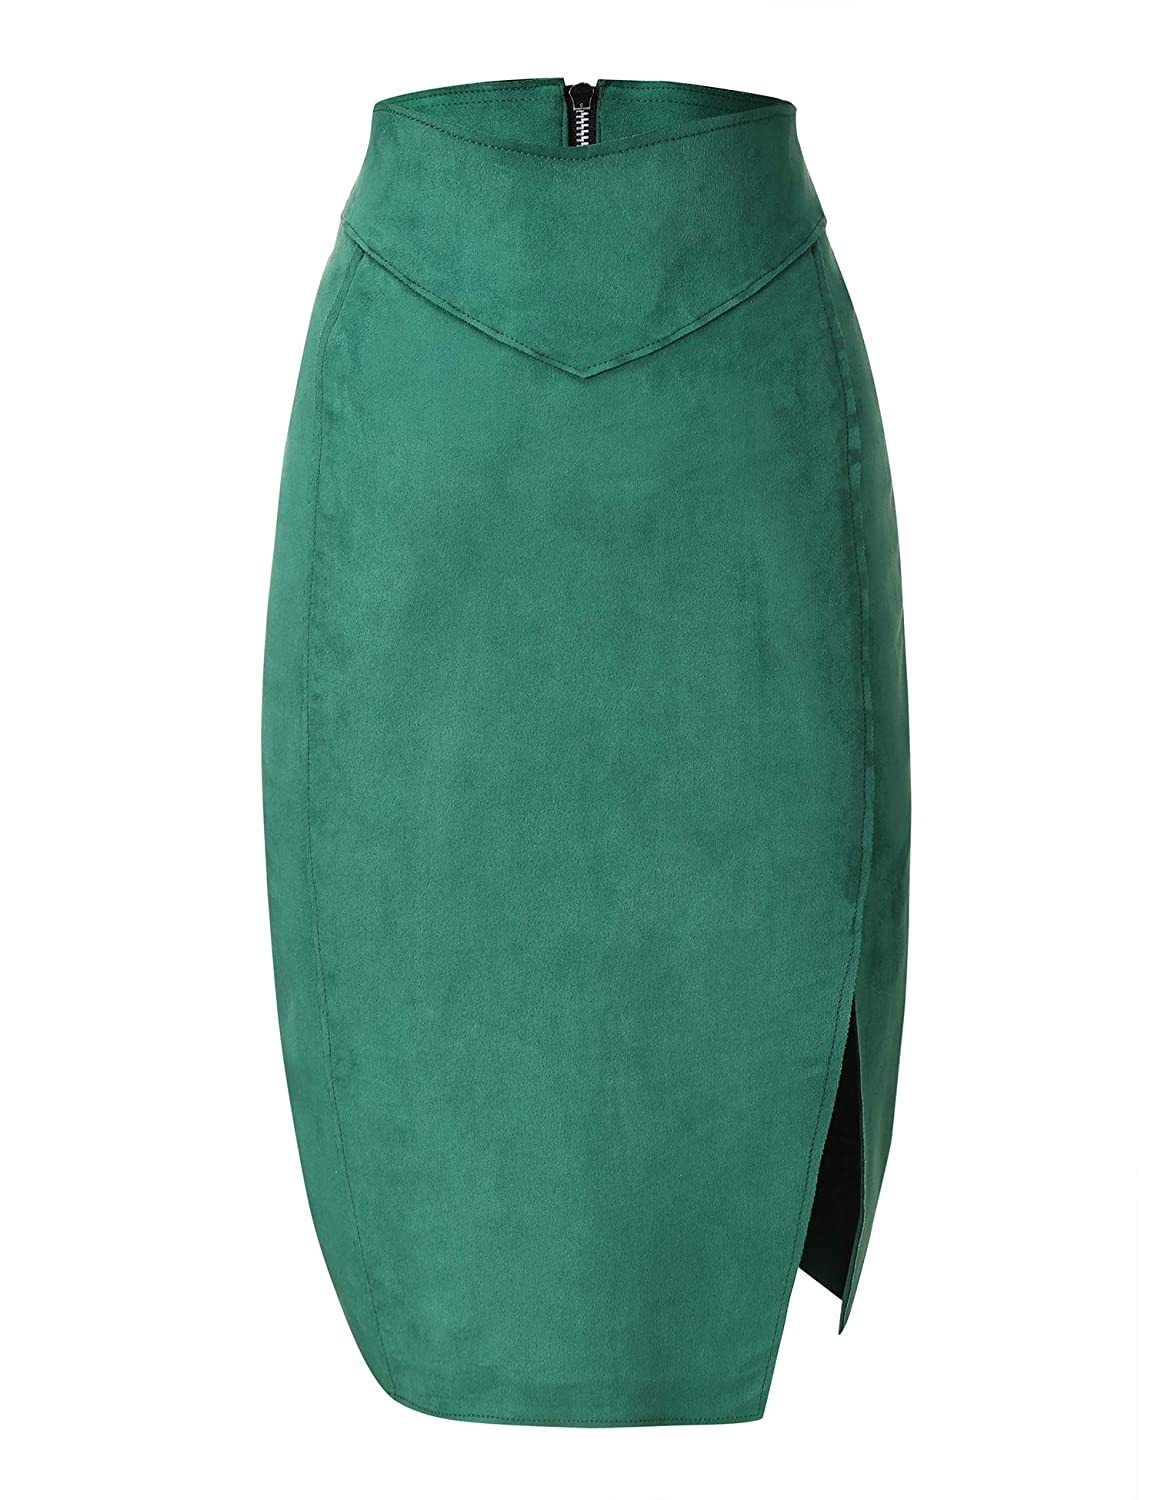 694d01afd Amazon.com: Bellivera Women's Faux Suede Pencil Skirt Hip Wrapped Back  Split for Spring: Clothing